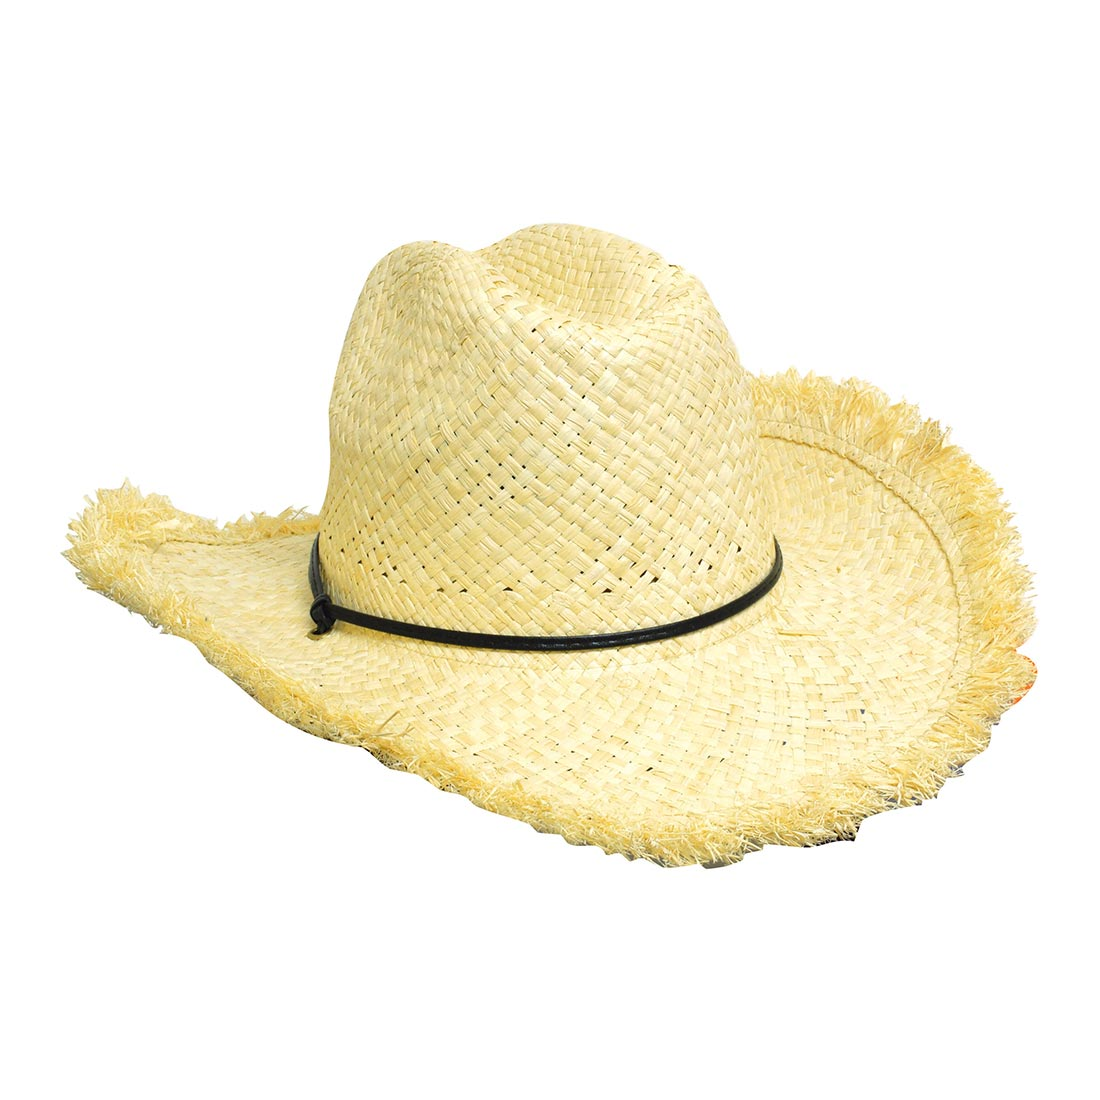 headwear-straw-hat-4280-square